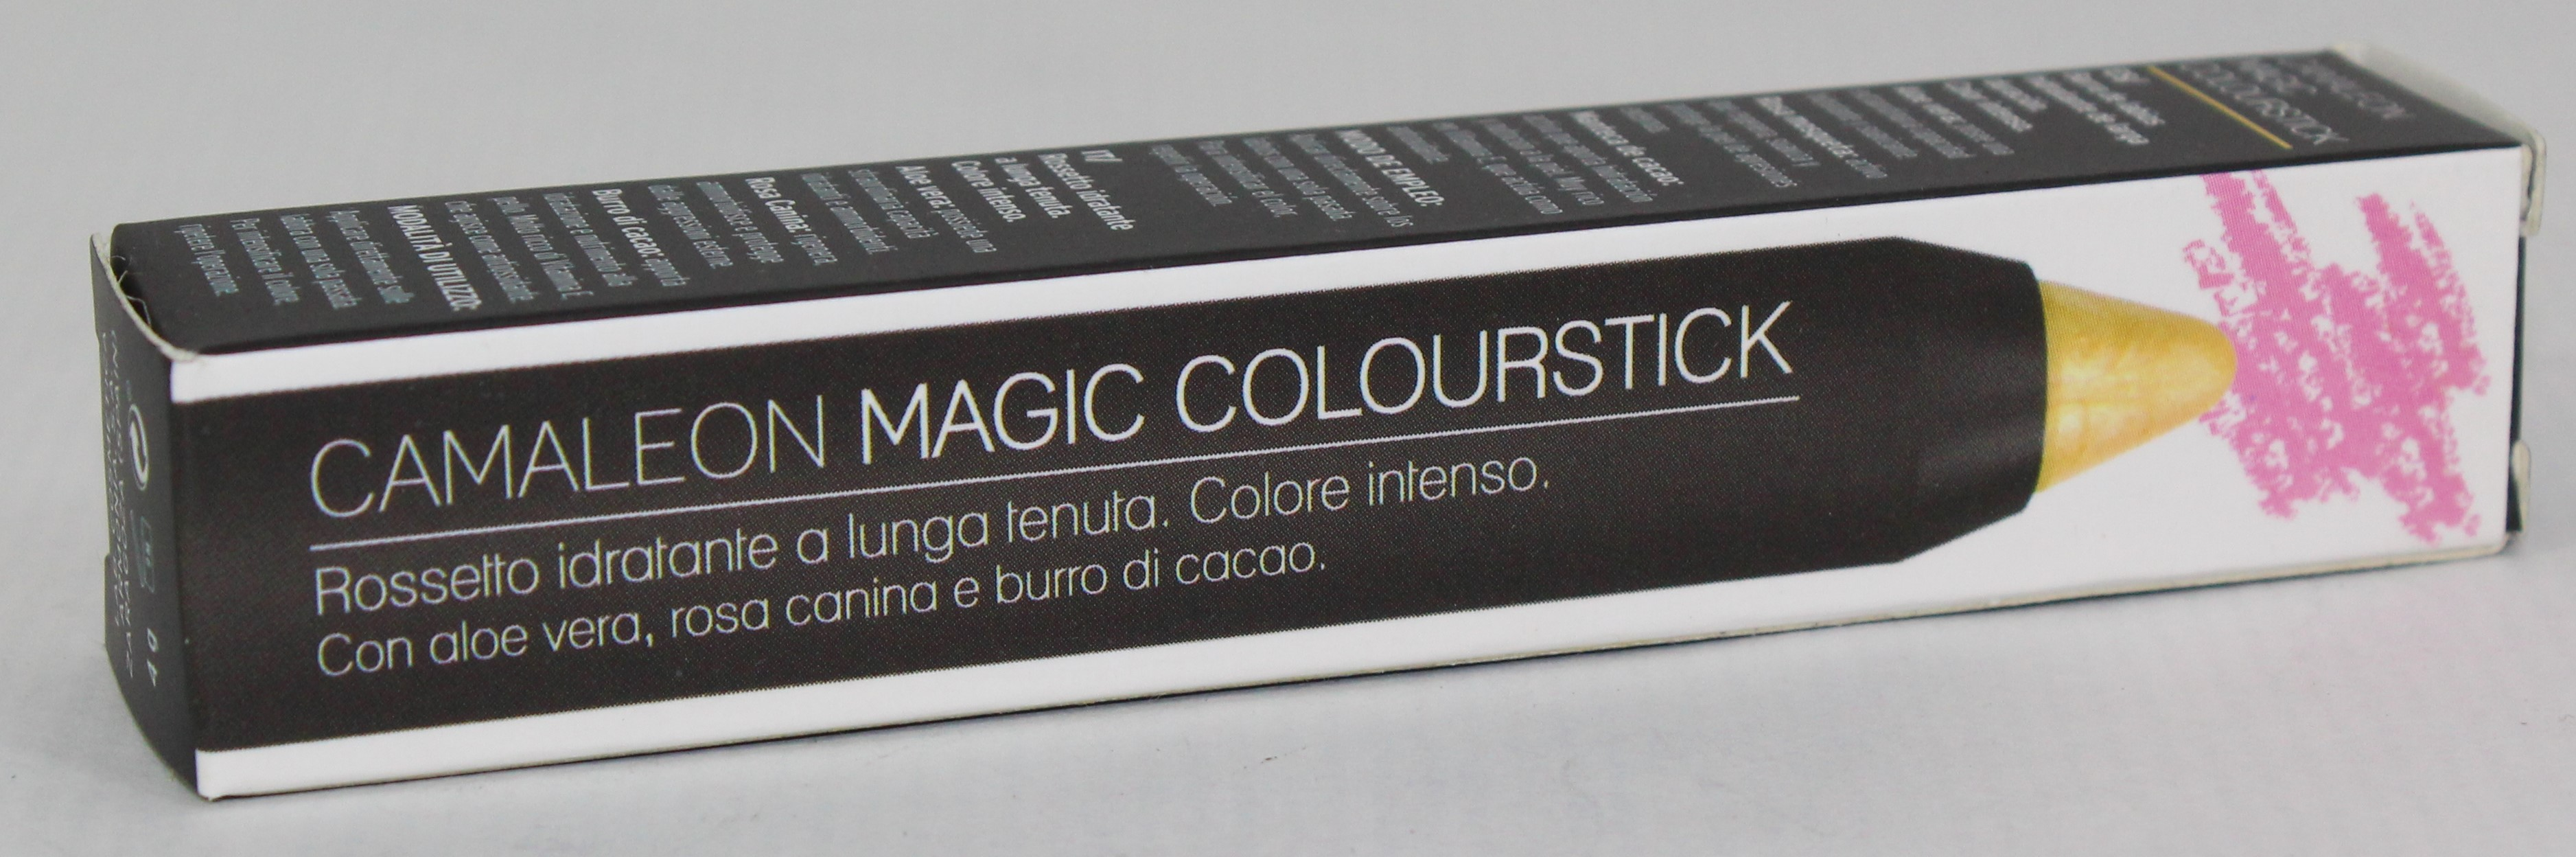 CAMALEON MAGIC PERMANENTE LABIAL AMARILLO 4 G